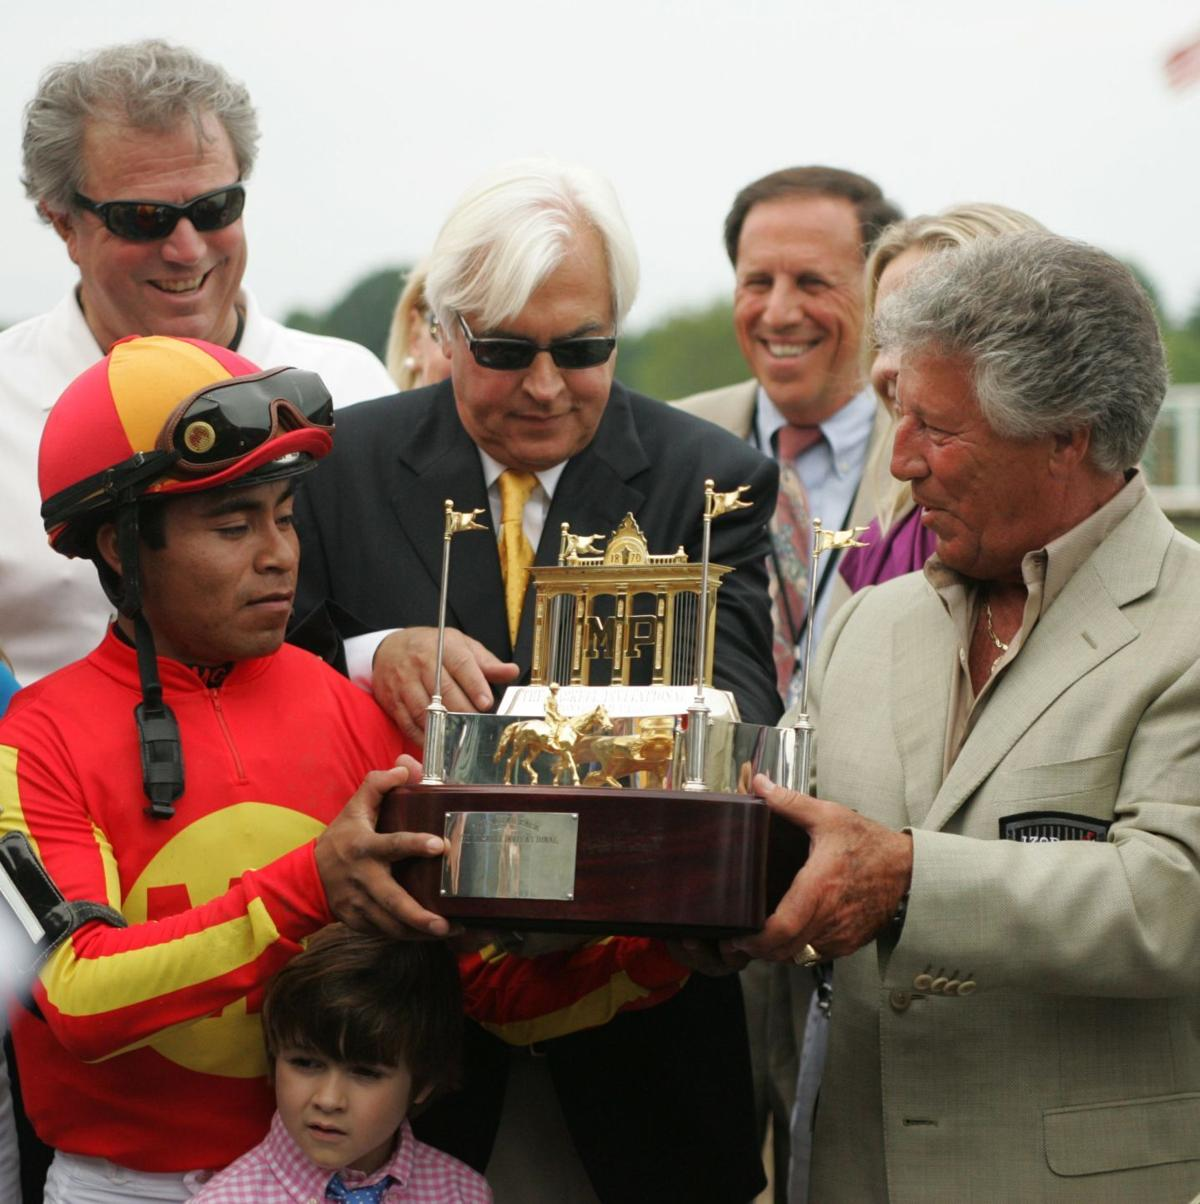 Looking at Lucky' Jockey, Martin Garcia, left, smiles while holding the 2010 Haskell trophy with trainer Bob Baffert, and race car legend, Mario Andretti, right. The 2010, $1,000,000 IZOD Haskell at Monmouth Park in Oceanport, Sunday, August 1, 2010.